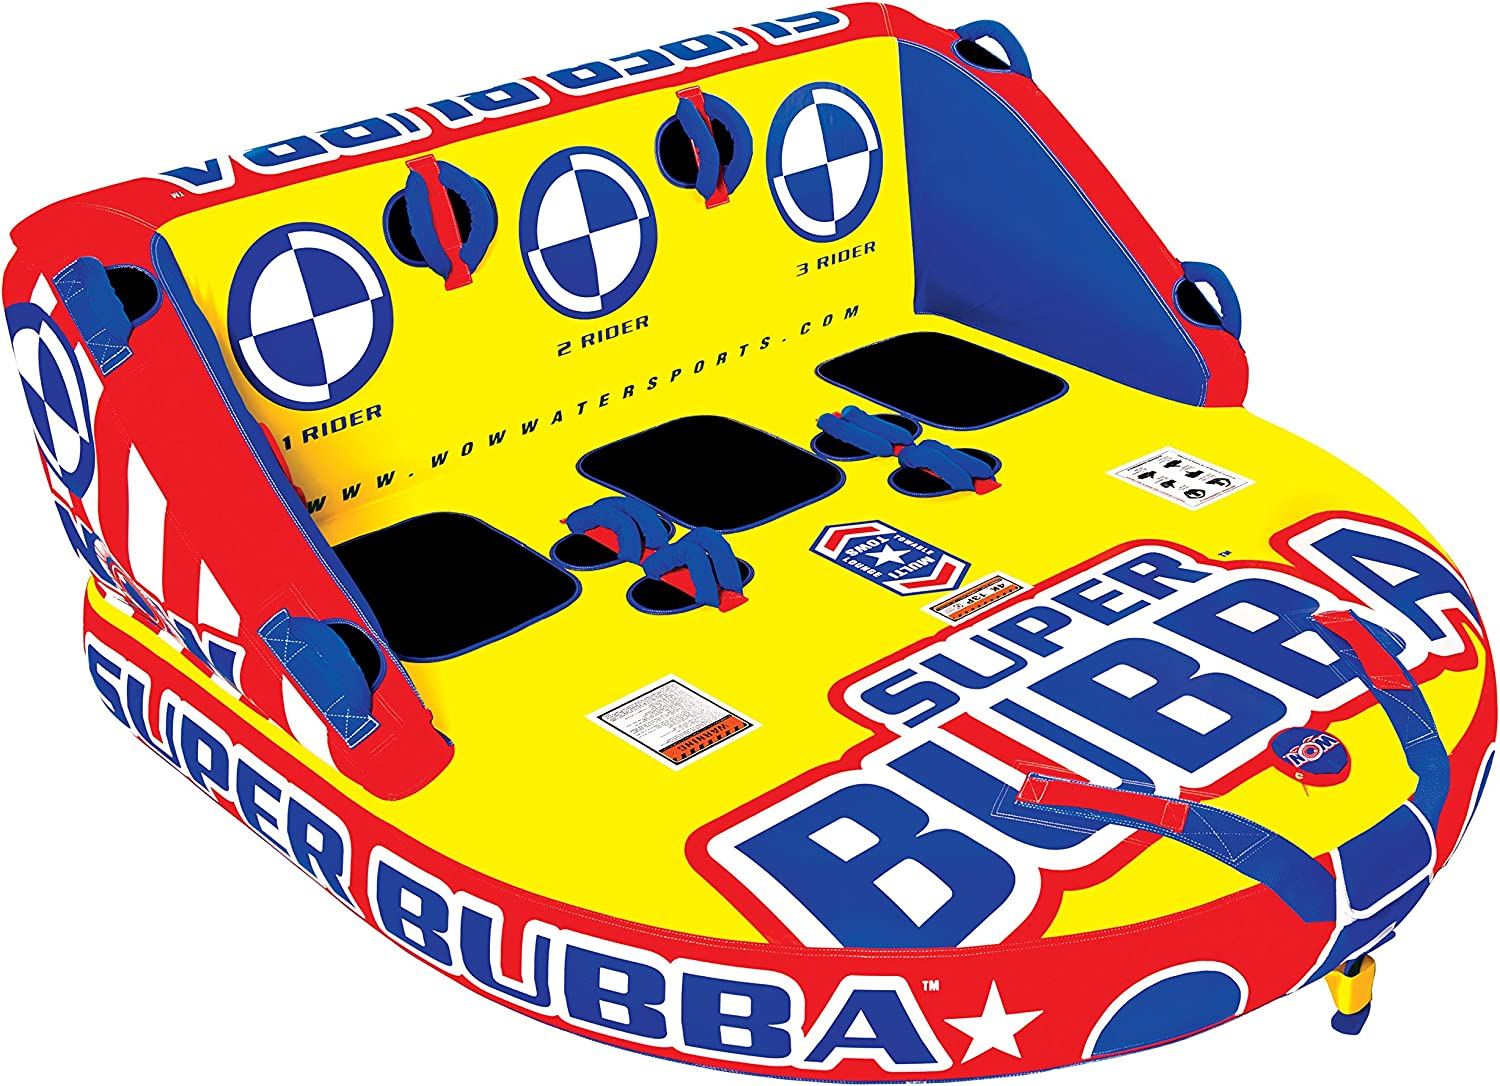 WOW Super Bubba 3Rider Towable